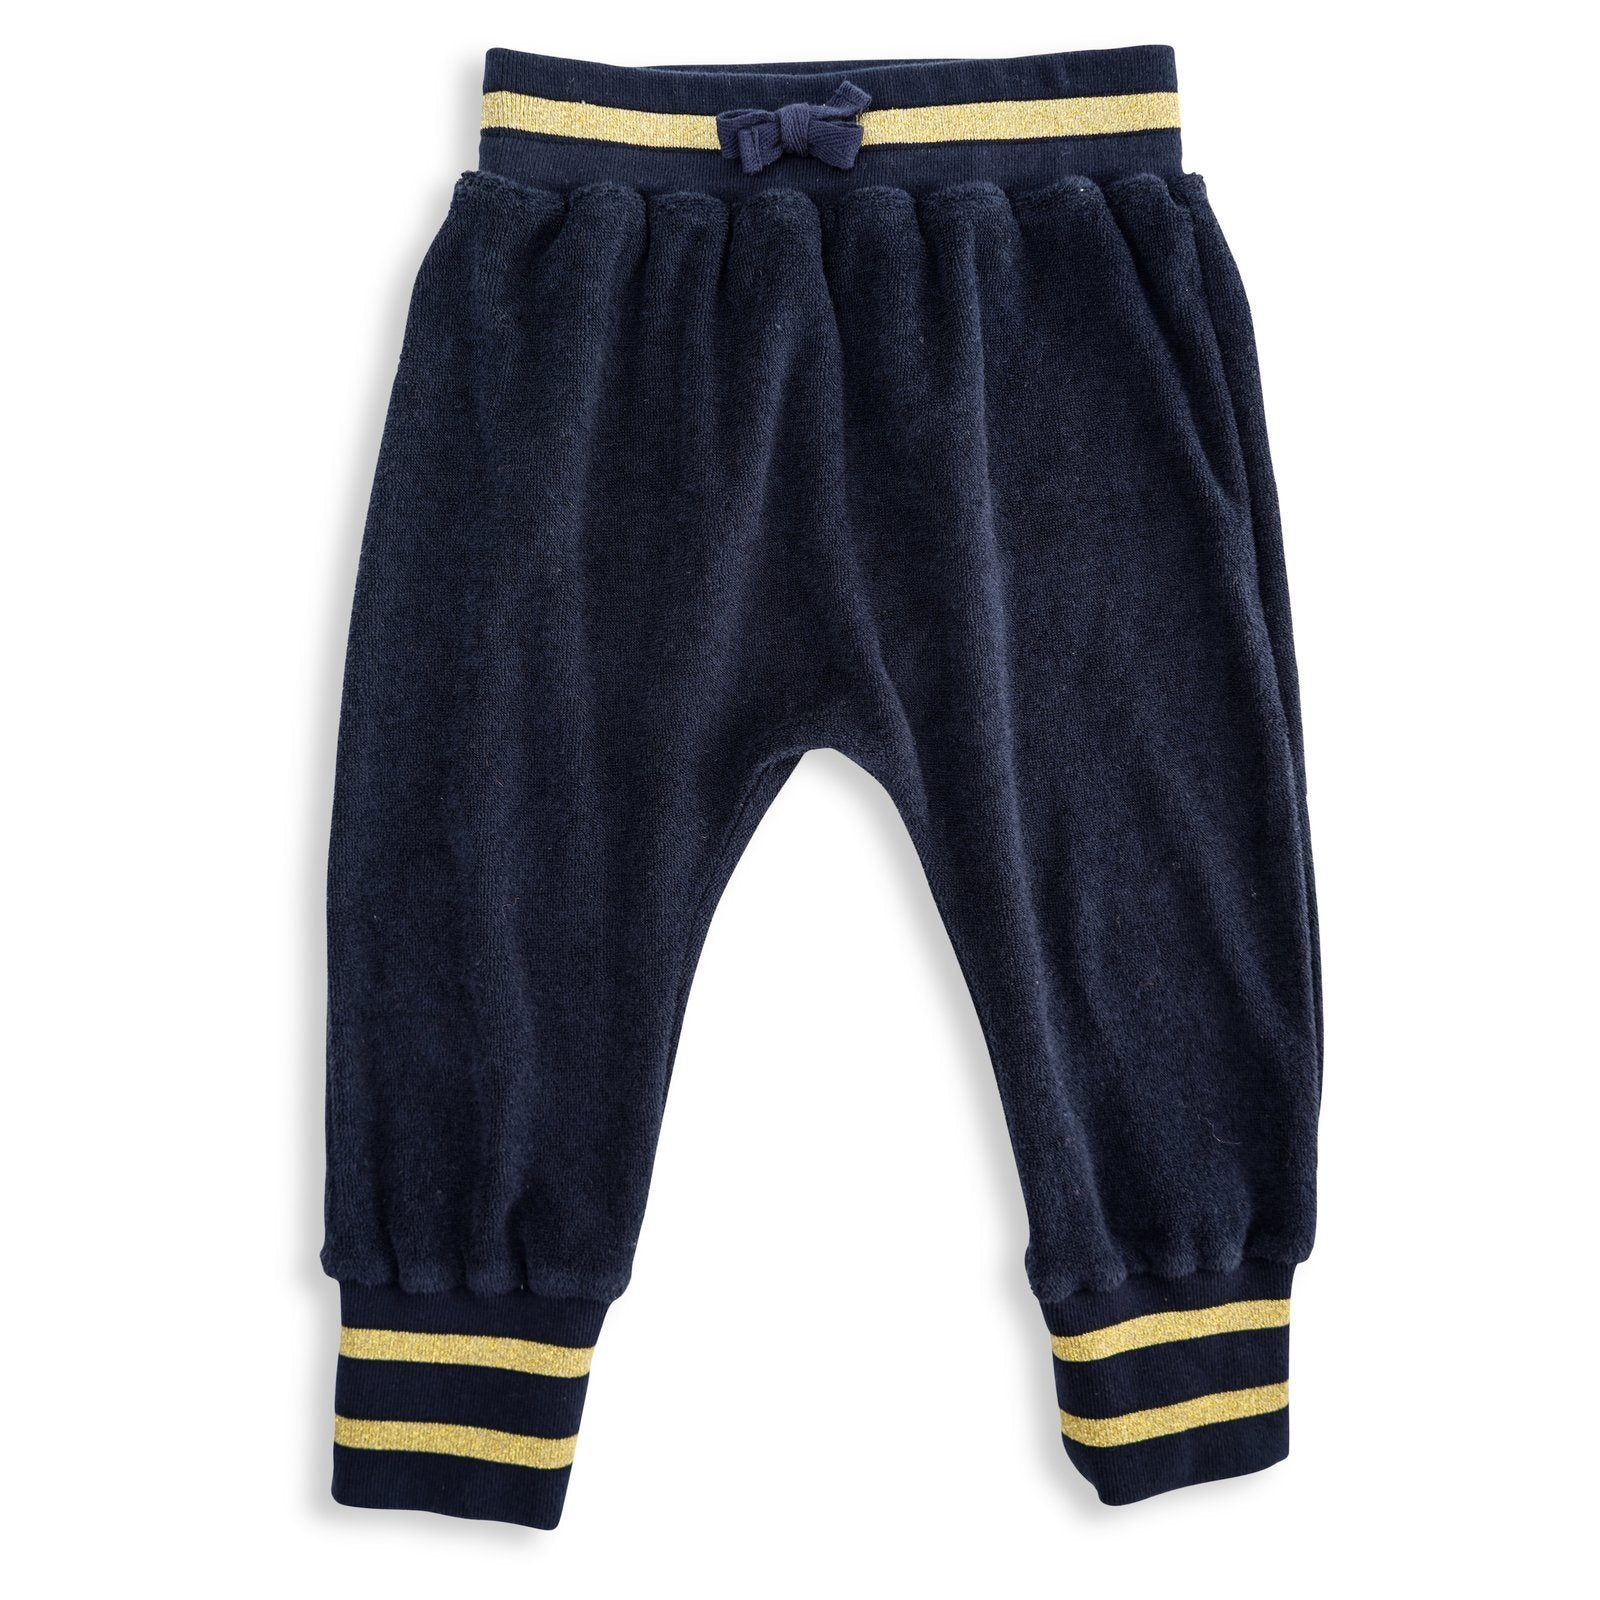 Miami Terry Towelling Pants (Navy)